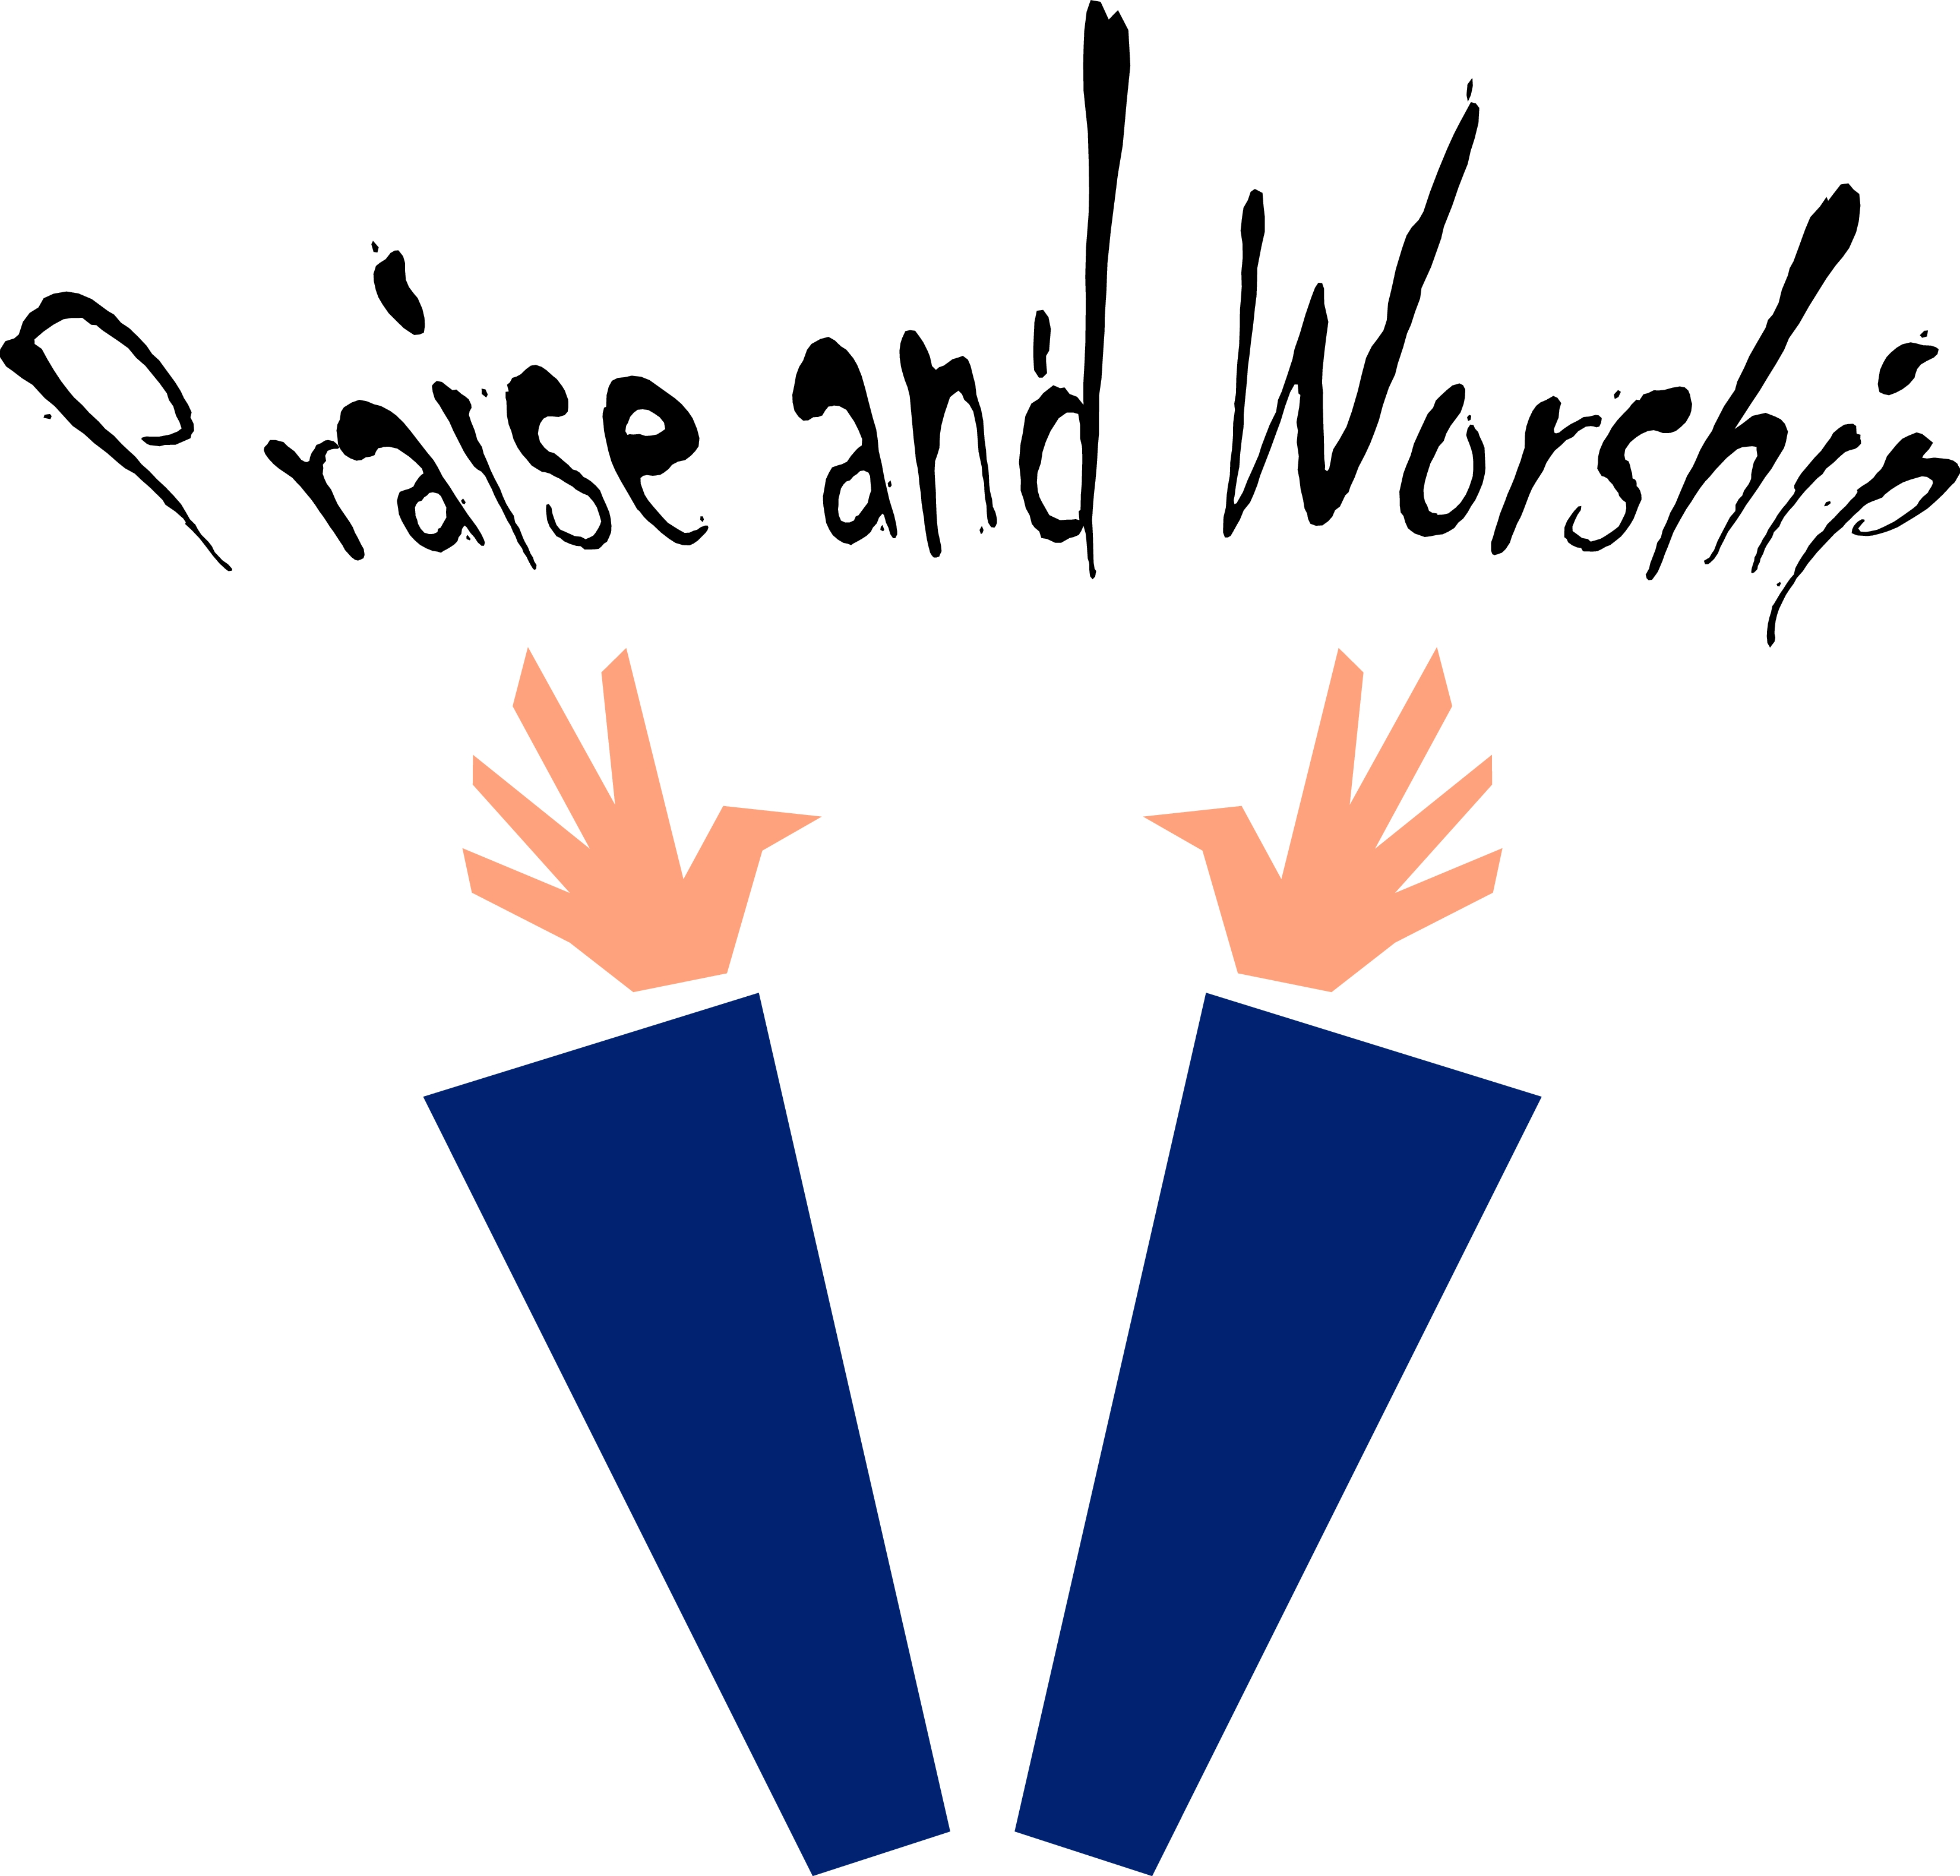 Praise and Worship Clip Art